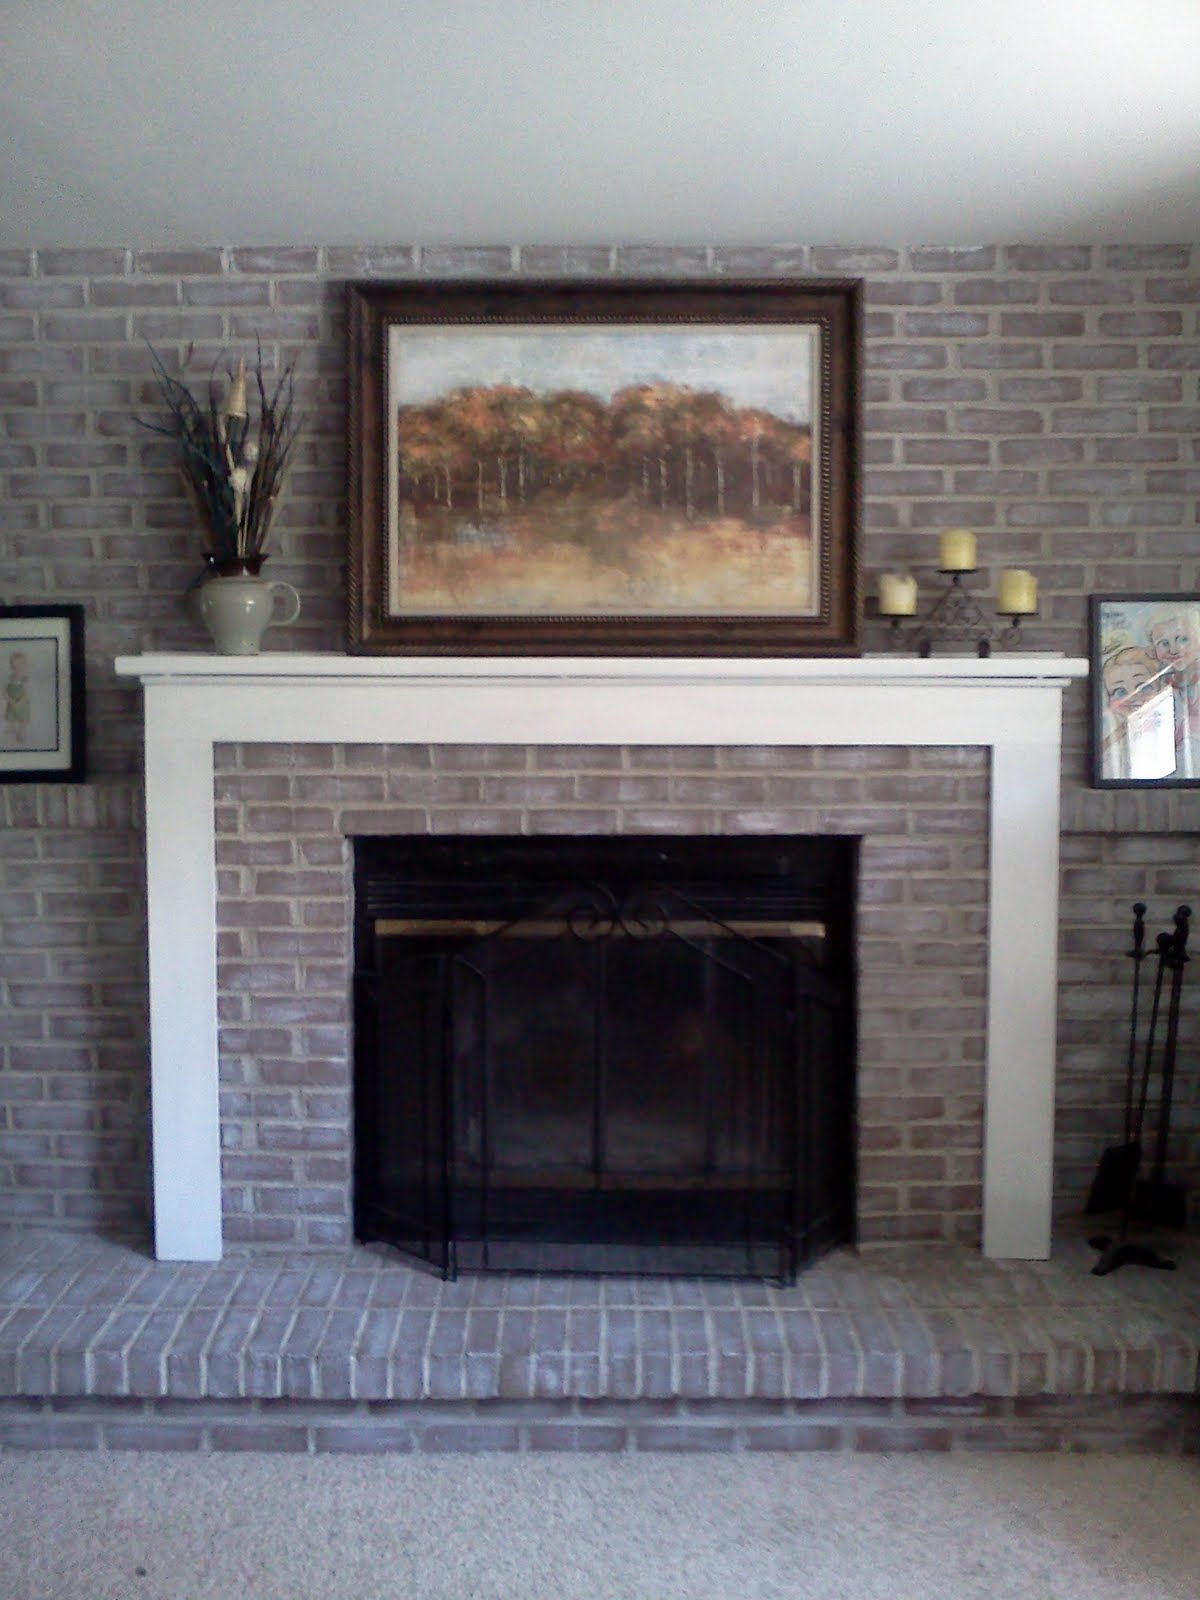 s remodel pinterest on net brick f fire decorating there a as front fireplace iranews cleaning daut pin smoke where